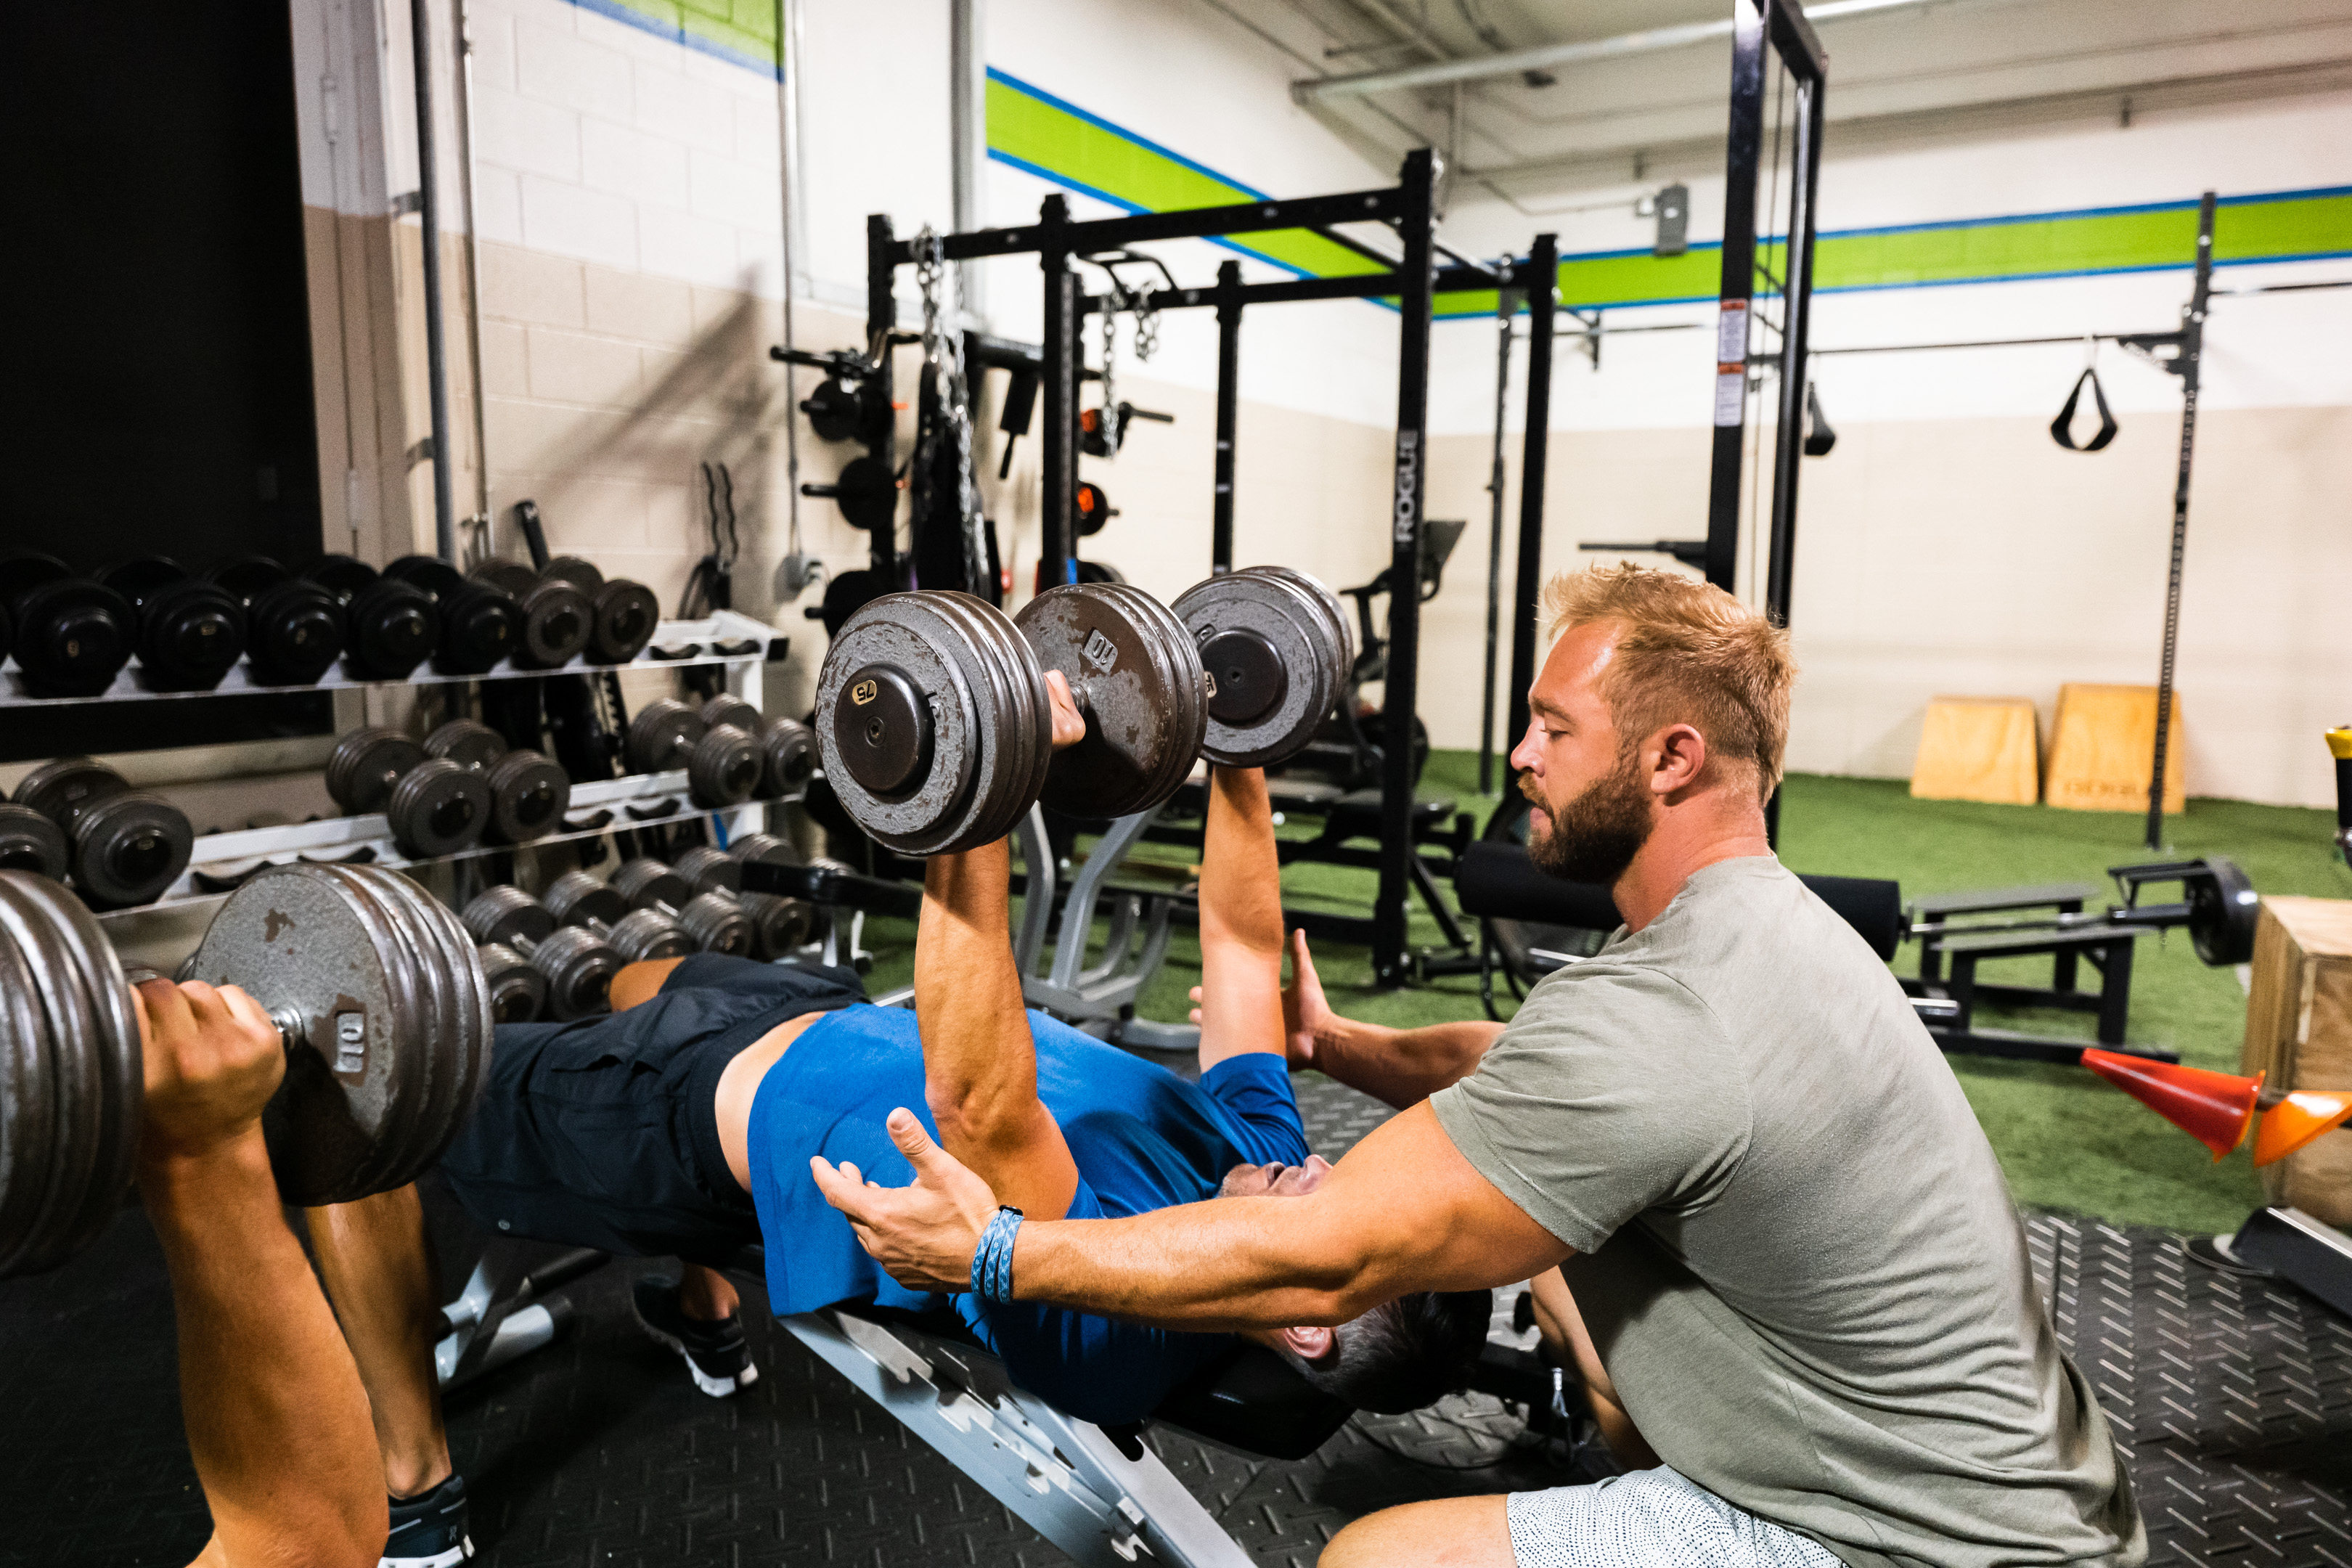 Workout session at Prevail Grand Rapids personal training and gym located in Ada, Michigan.